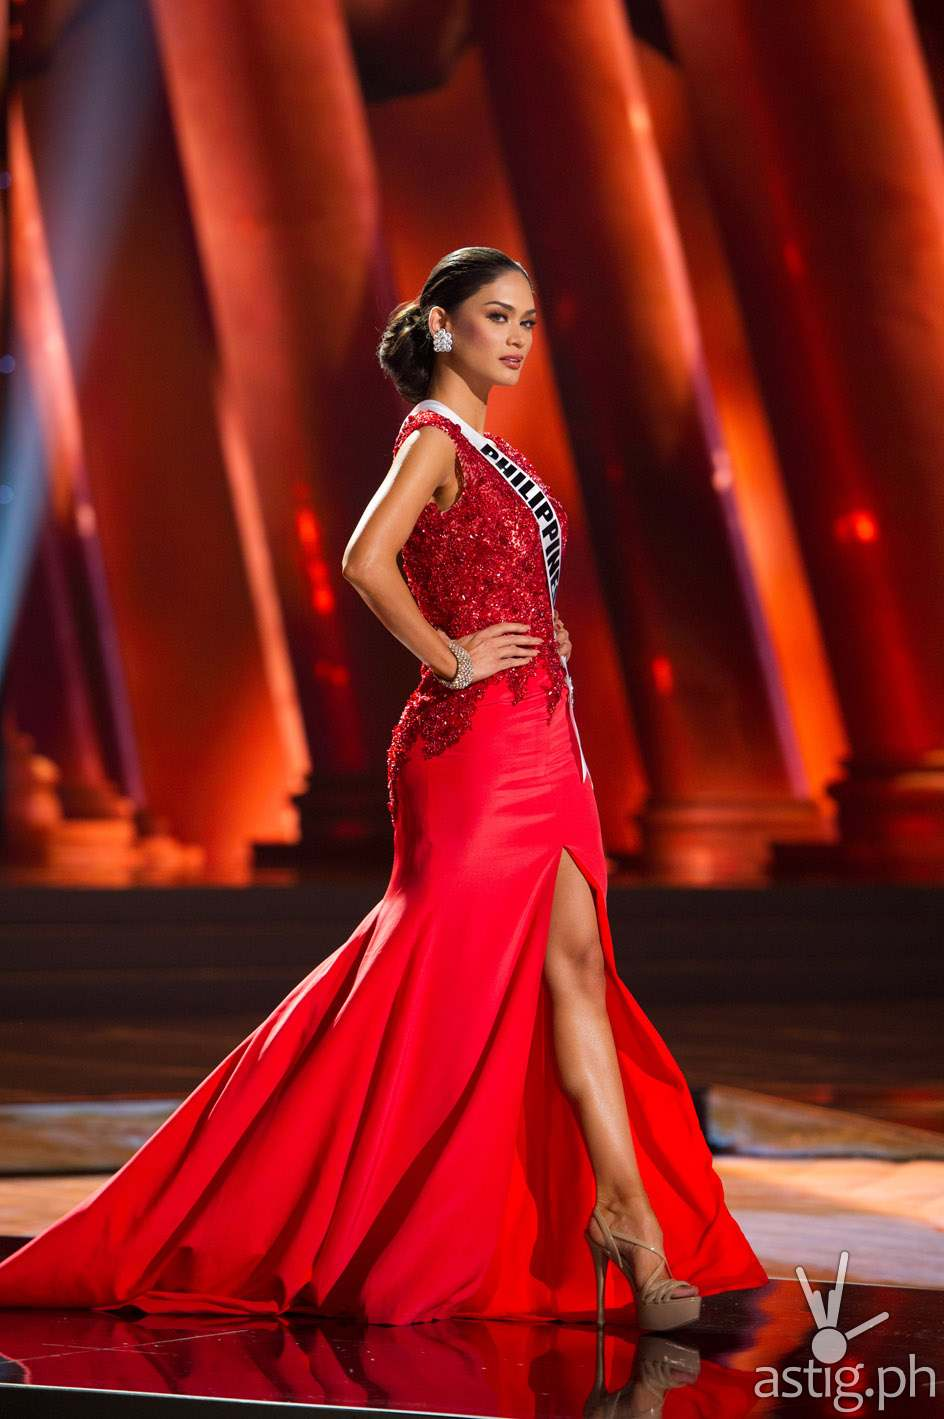 Pia Alonzo Wurtzbach, Miss Philippines 2015, competes on stage in her evening gown during The 2015 MISS UNIVERSE® Preliminary Show at Planet Hollywood Resort & Casino Wednesday, December 16, 2015. The 2015 Miss Universe contestants are touring, filming, rehearsing and preparing to compete for the DIC Crown in Las Vegas. Tune in to the FOX telecast at 7:00 PM ET live/PT tape-delayed on Sunday, Dec. 20, from Planet Hollywood Resort & Casino in Las Vegas to see who will become Miss Universe 2015. HO/The Miss Universe Organization